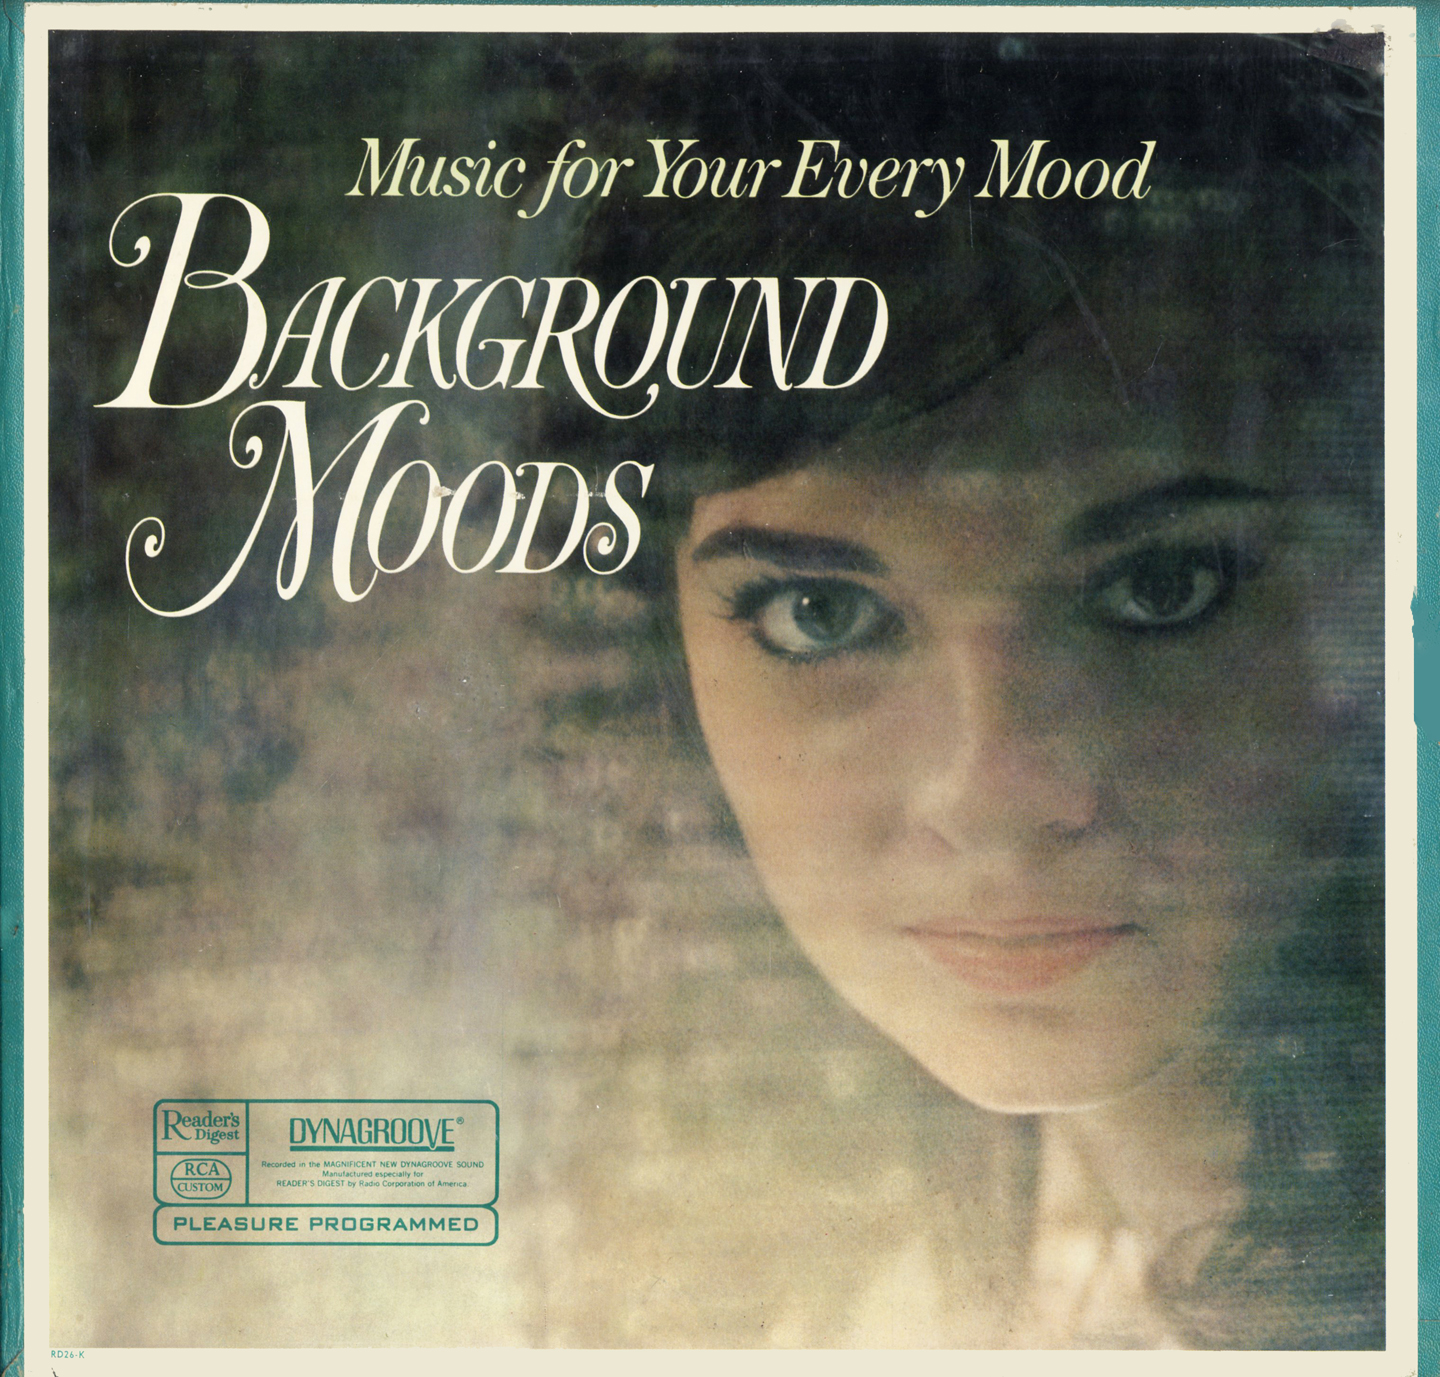 RD26 - Background Moods on CD